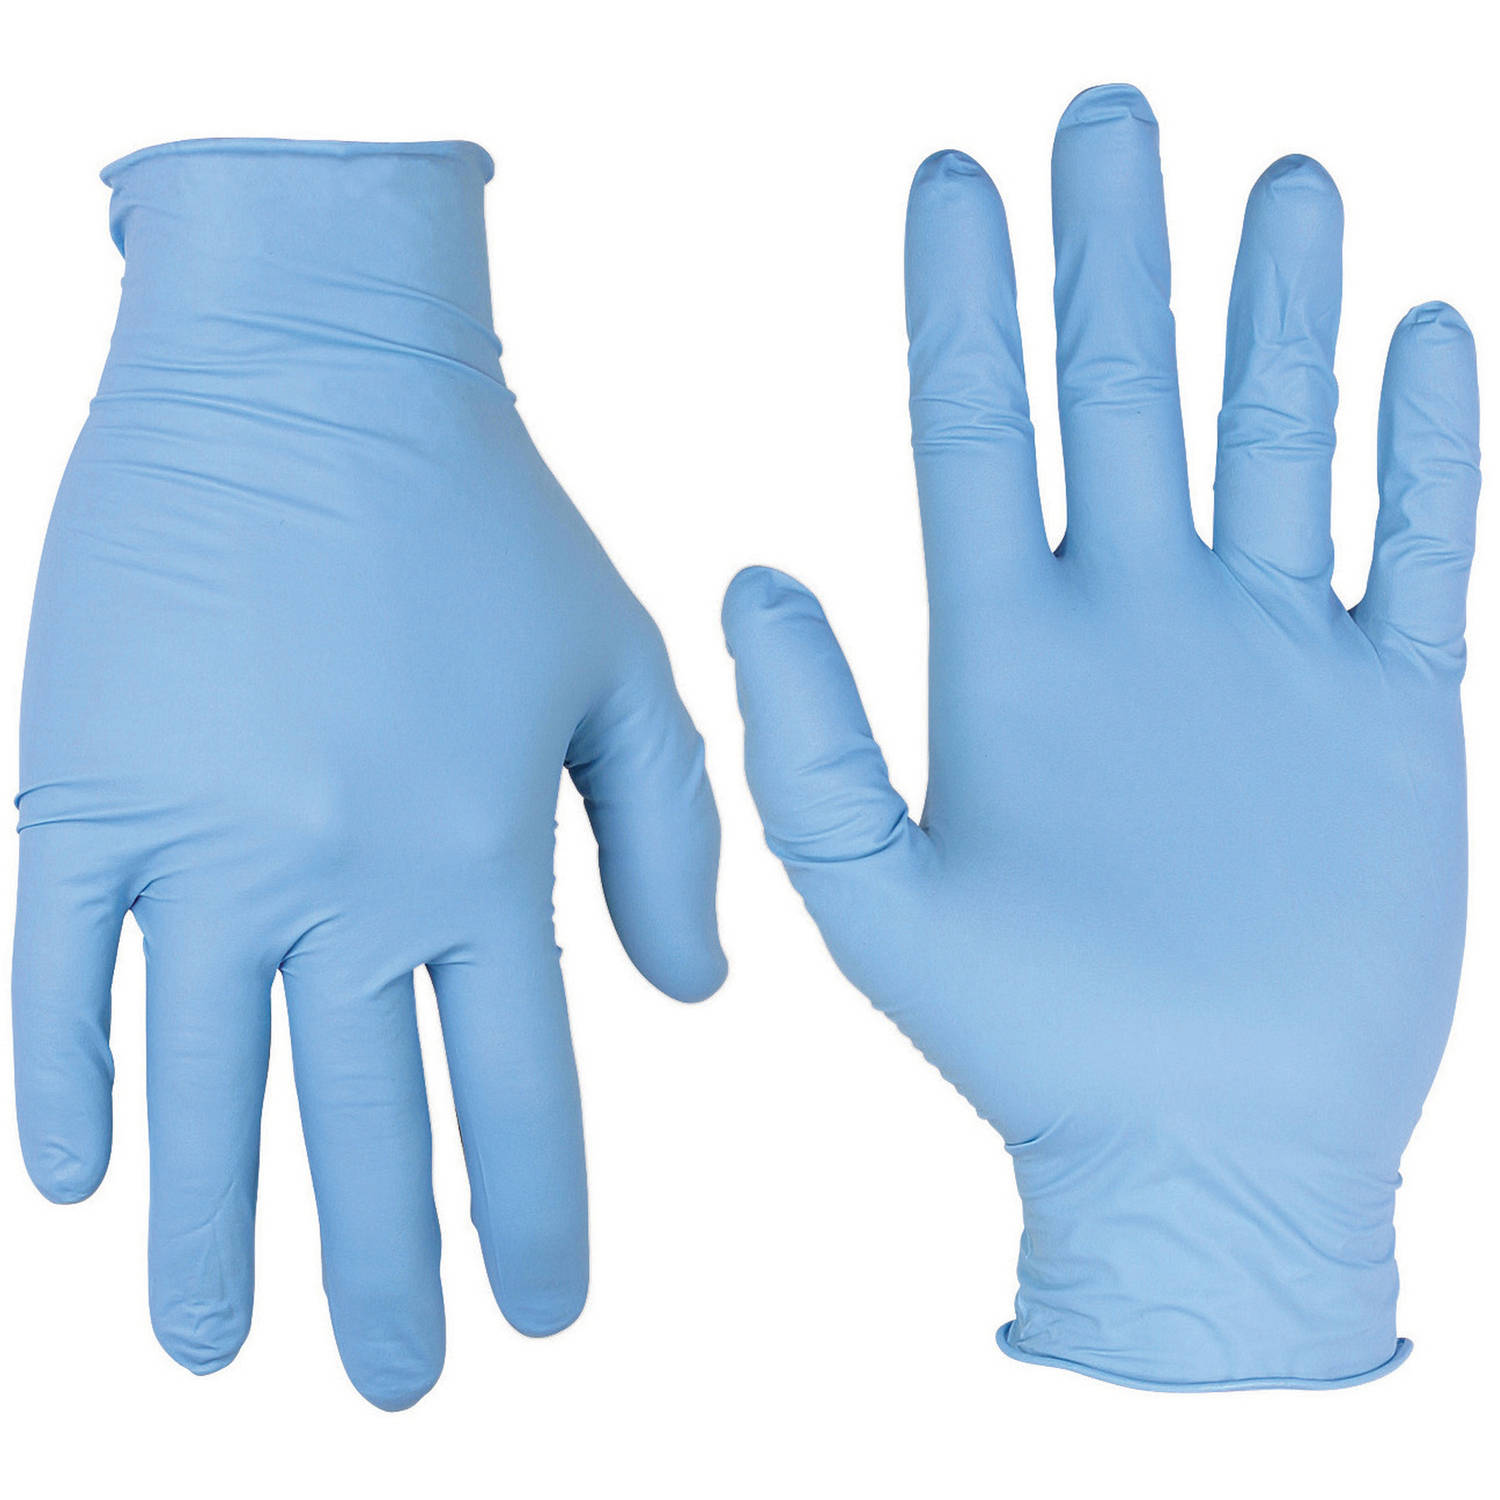 CLC Work Gear 2320X Extra large Nitrile Disposable Glove Box 100-Count